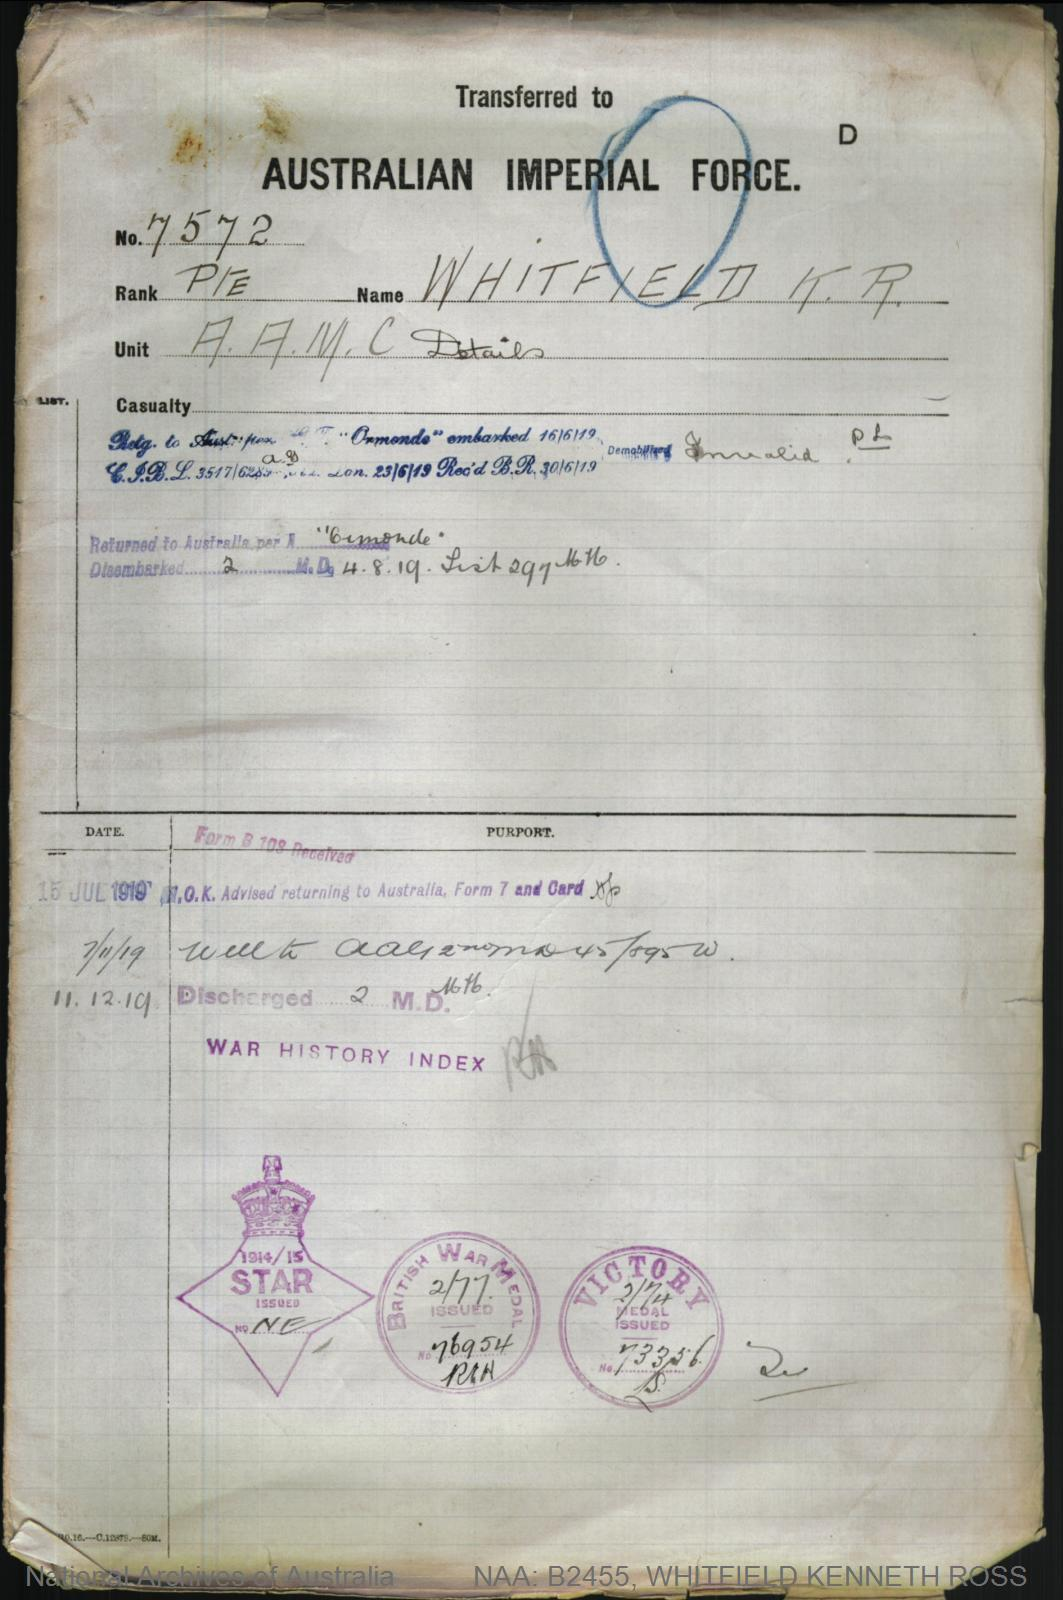 WHITFIELD Kenneth Ross : Service Number - 7572 : Place of Birth - Shellharbour NSW : Place of Enlistment - Sydney NSW : Next of Kin - (Father) WHITFIELD Thomas